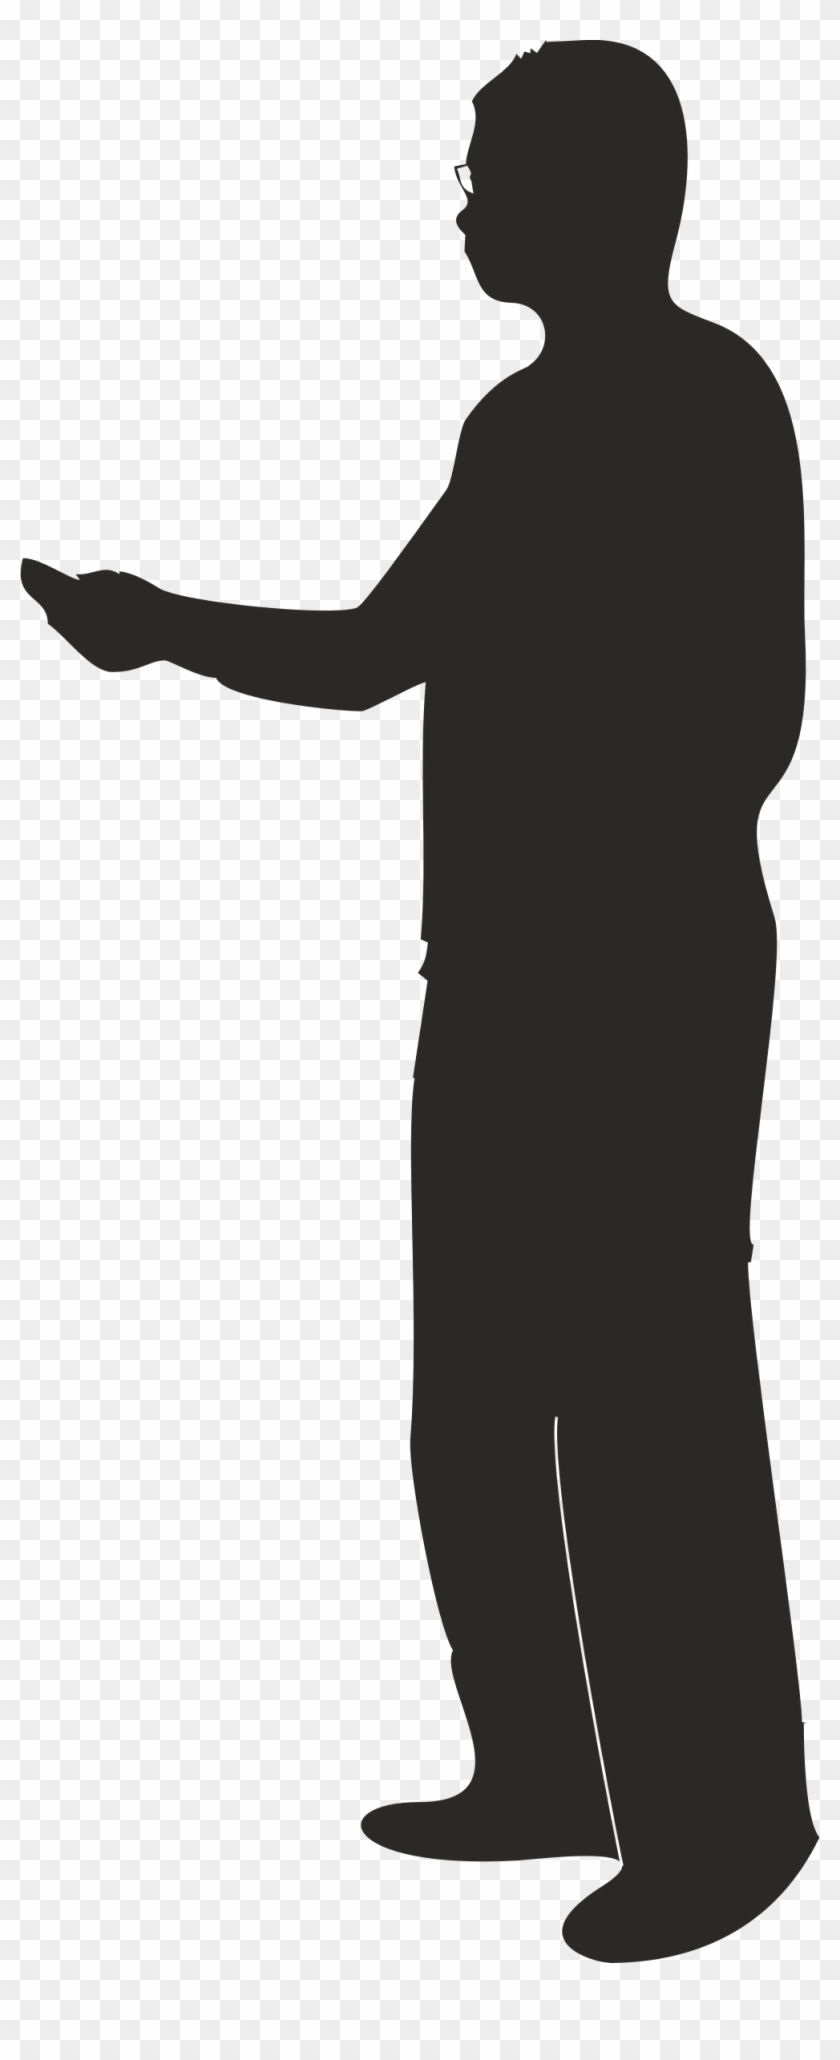 Clipart - Silhouette Person Pointing Png #128299